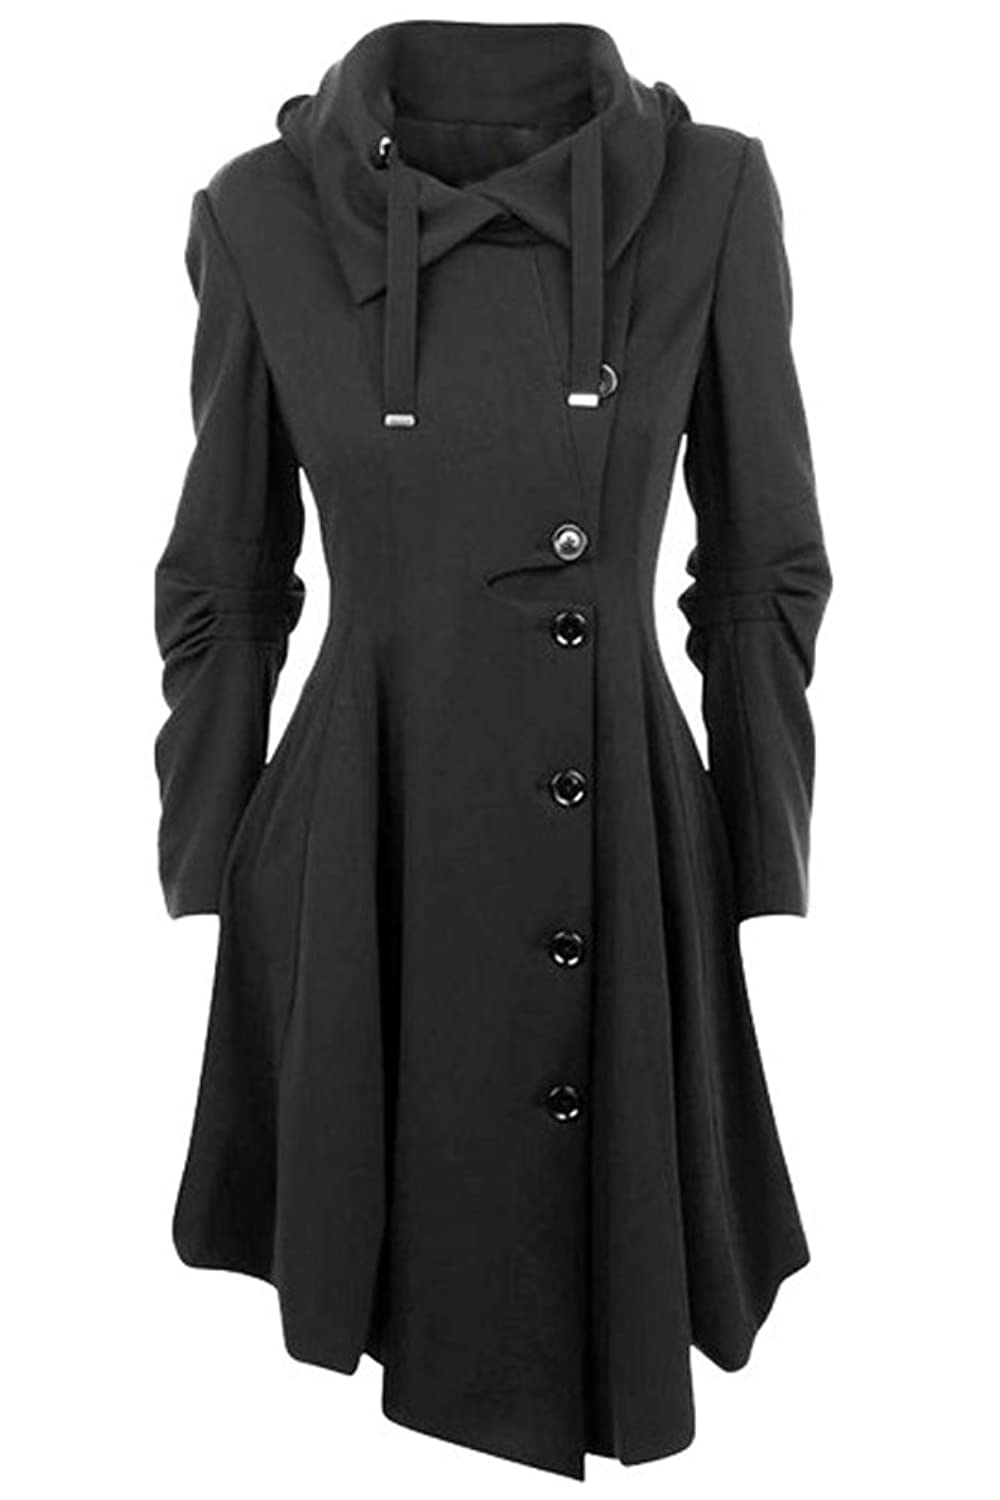 Amazon.com: ETCYY Women's Black Button Asymmetrical Winter Long ...